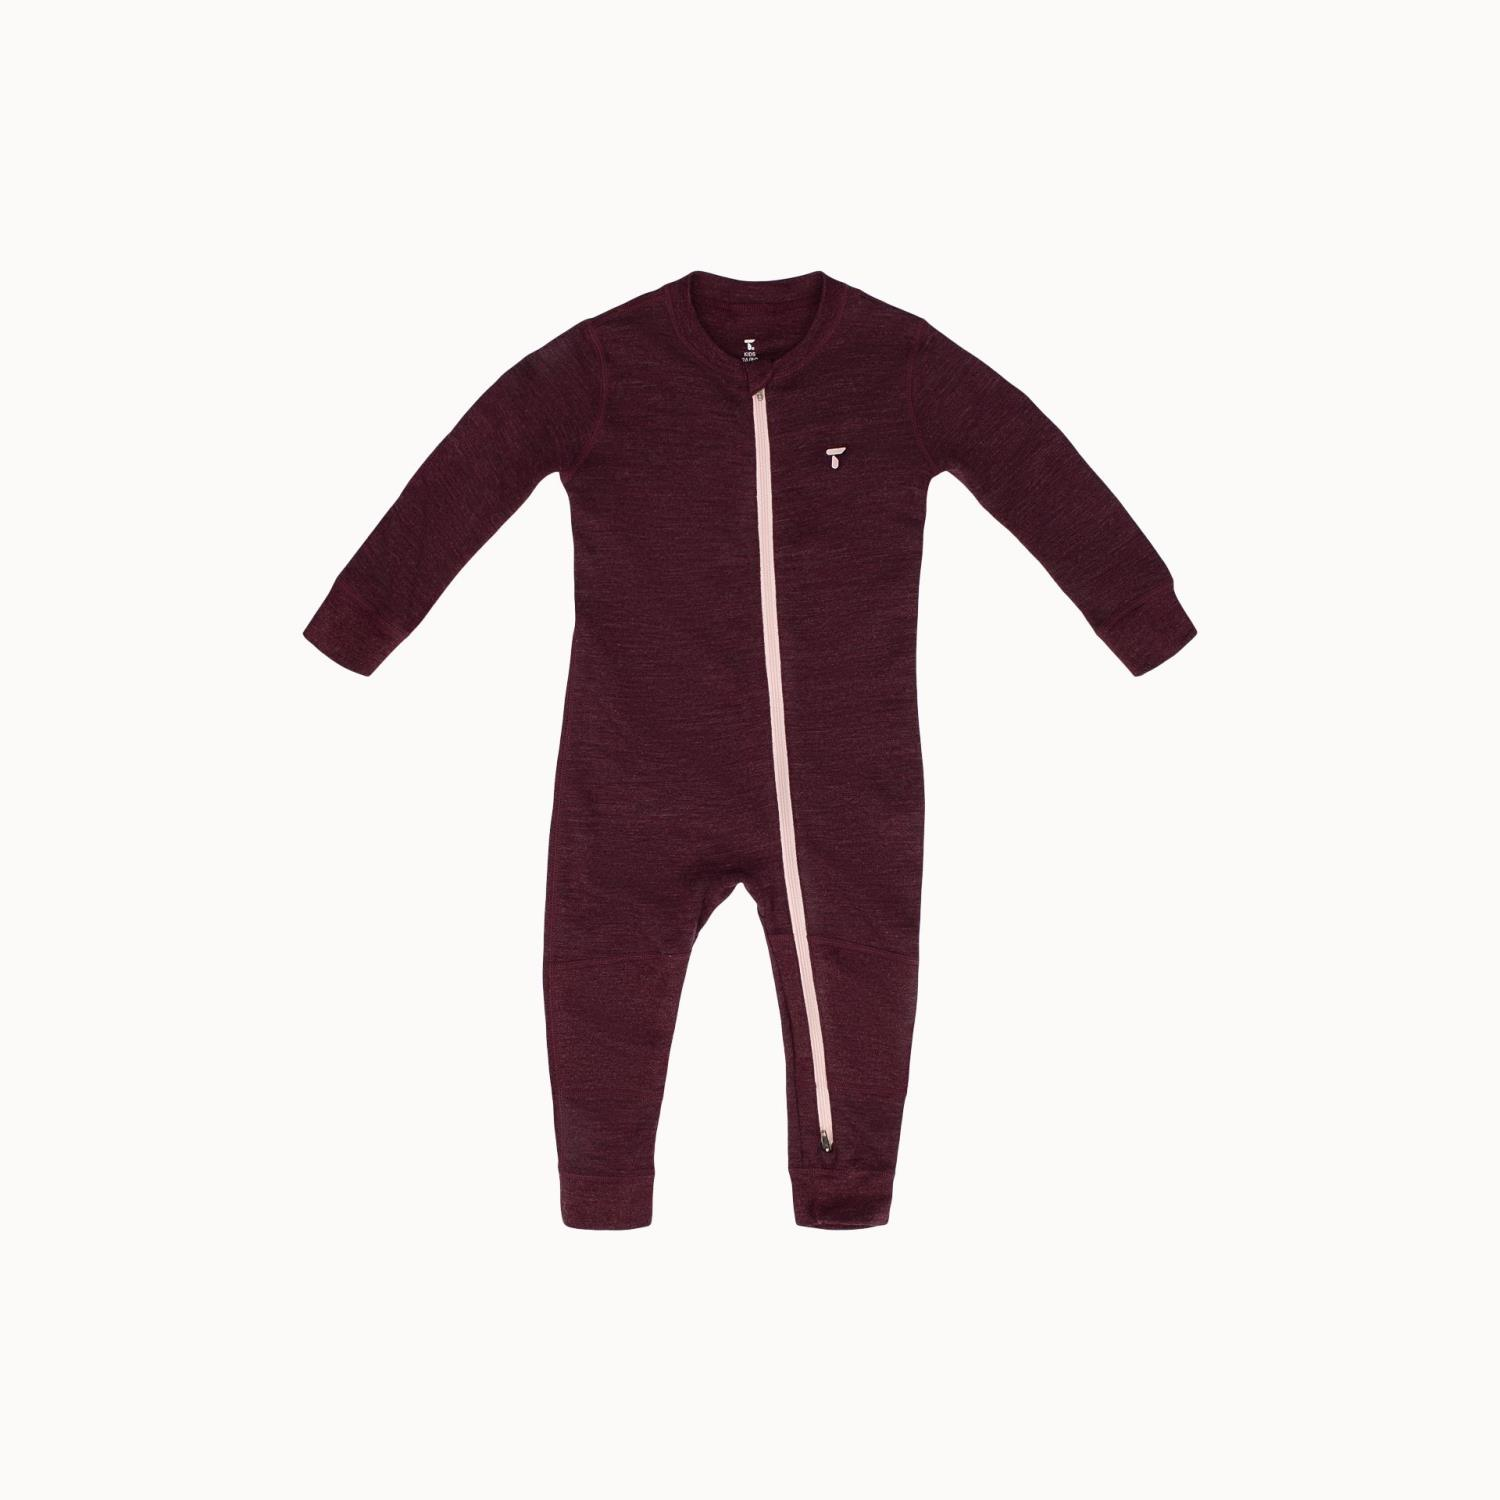 Tufte Wear  Kids Bambull Onesie